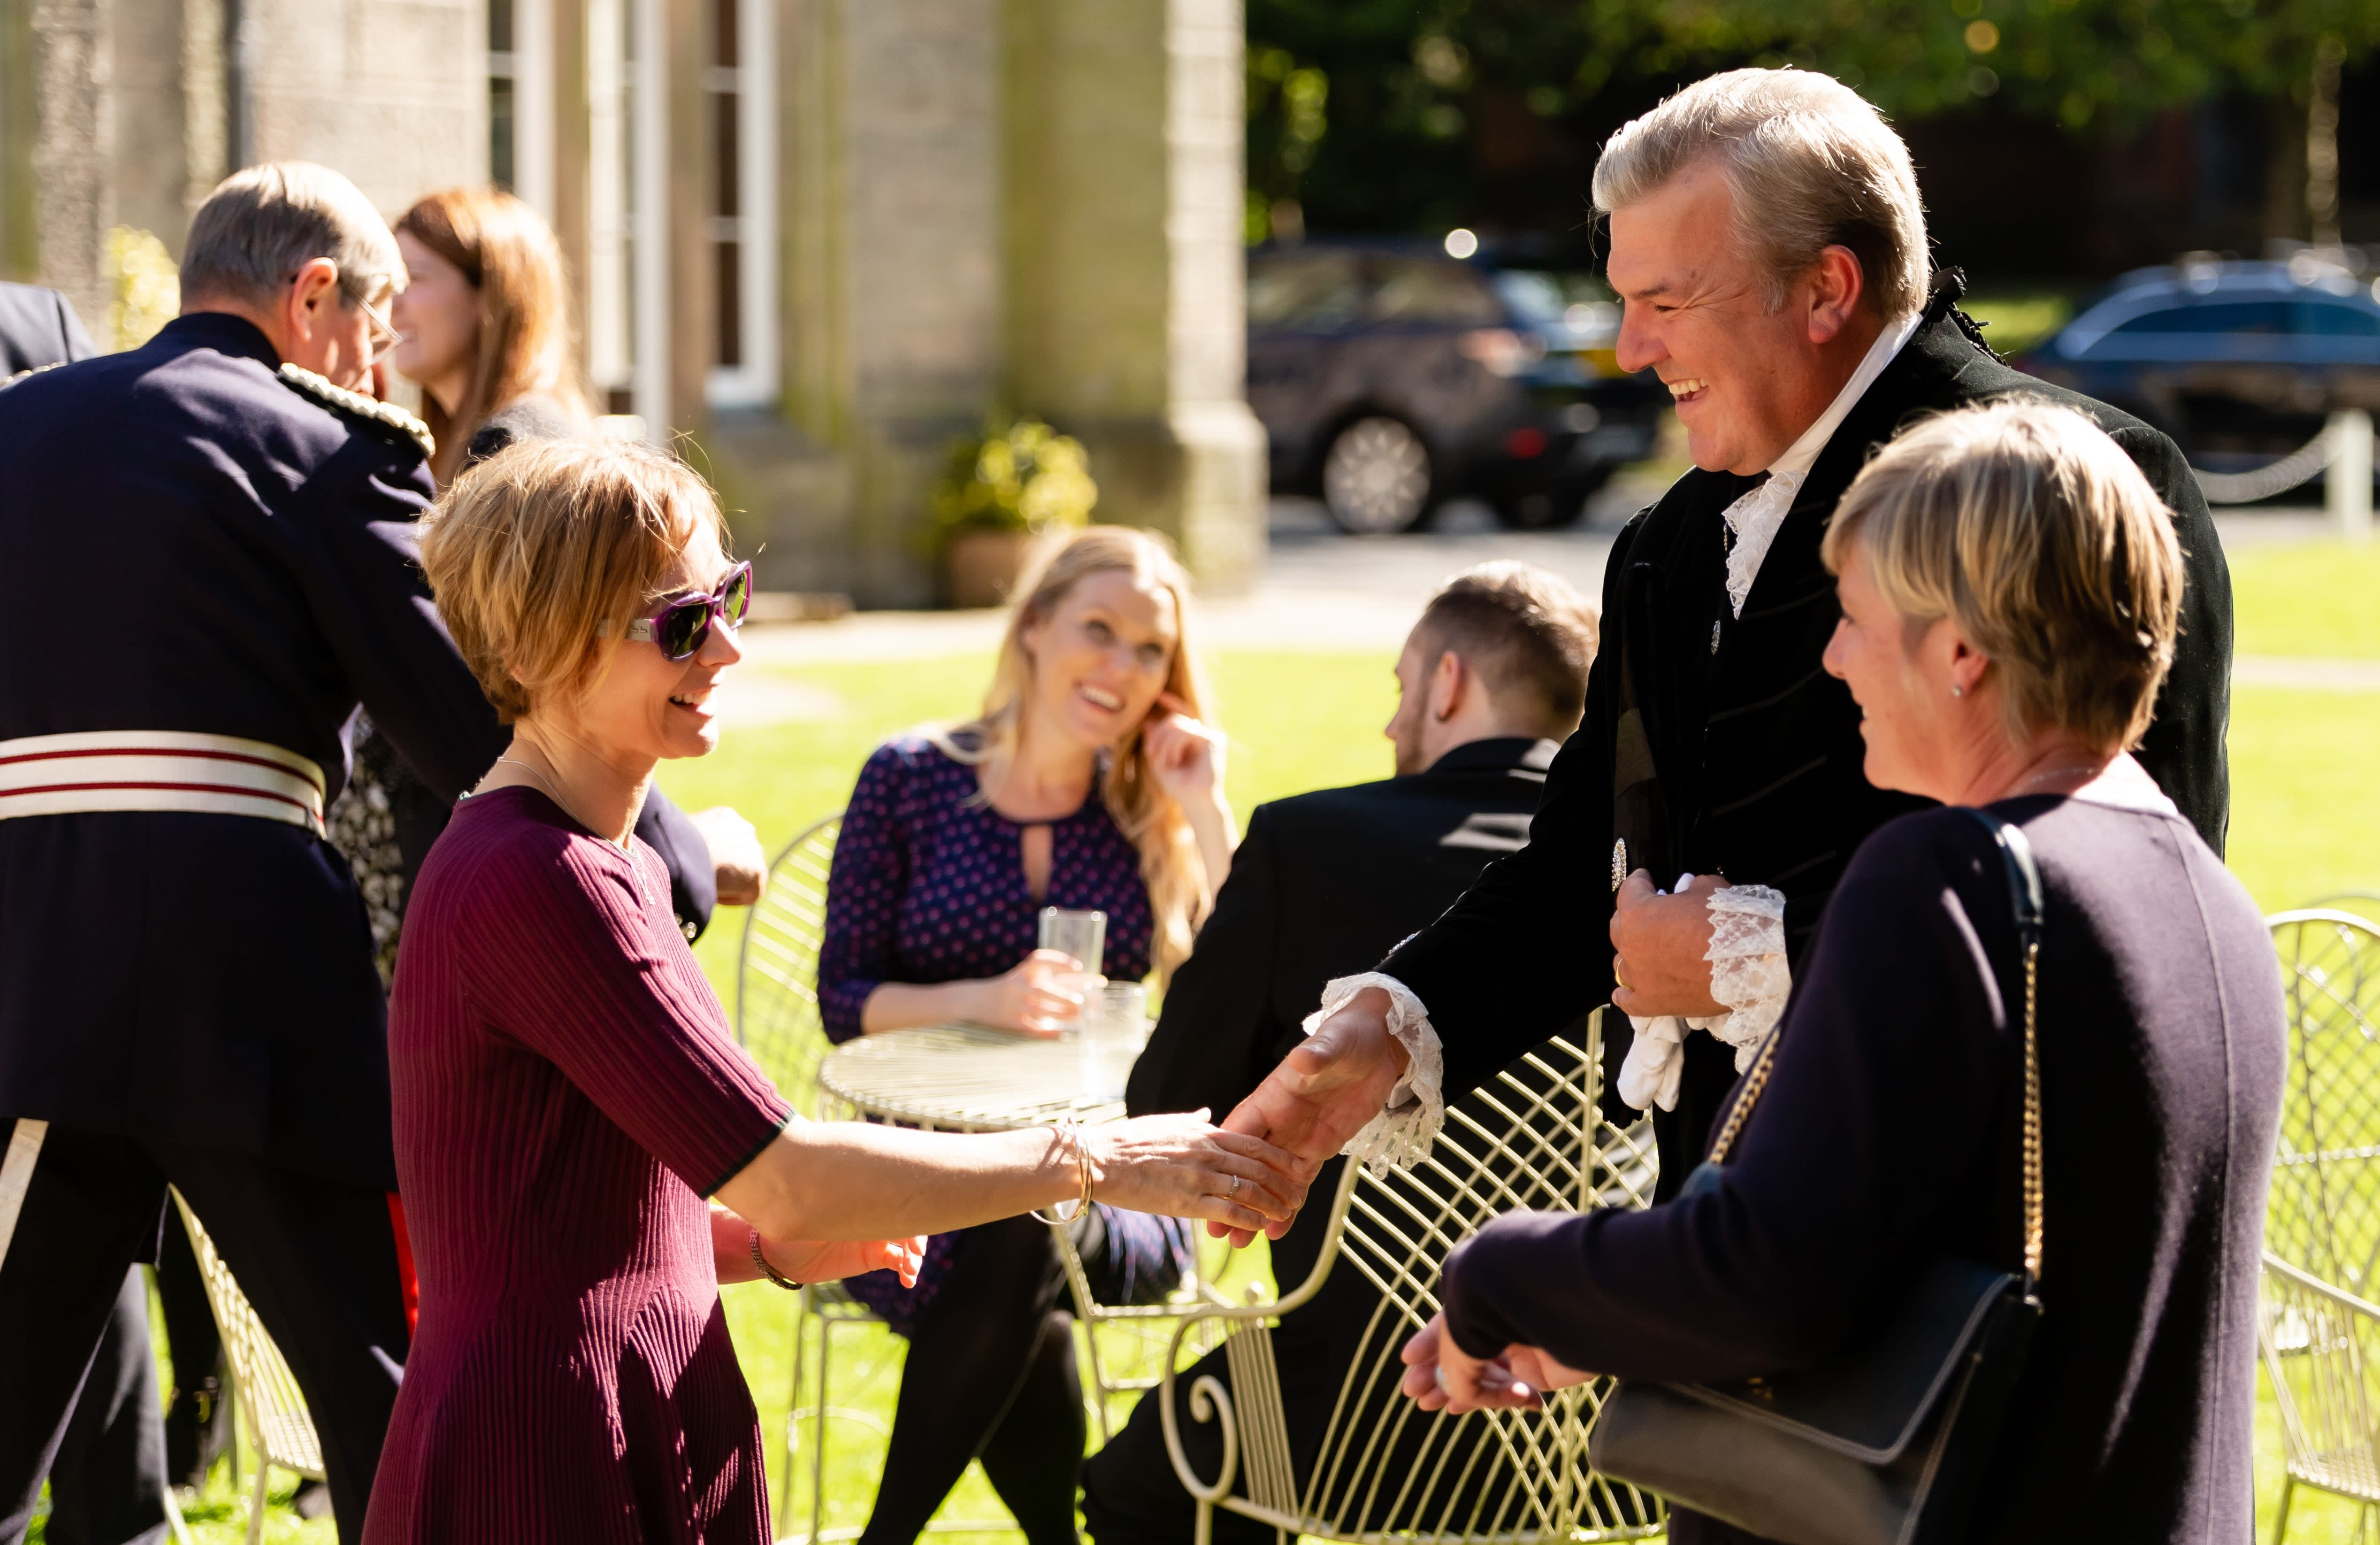 After the ceremony, everyone mingled in the gardens with tea and cake.